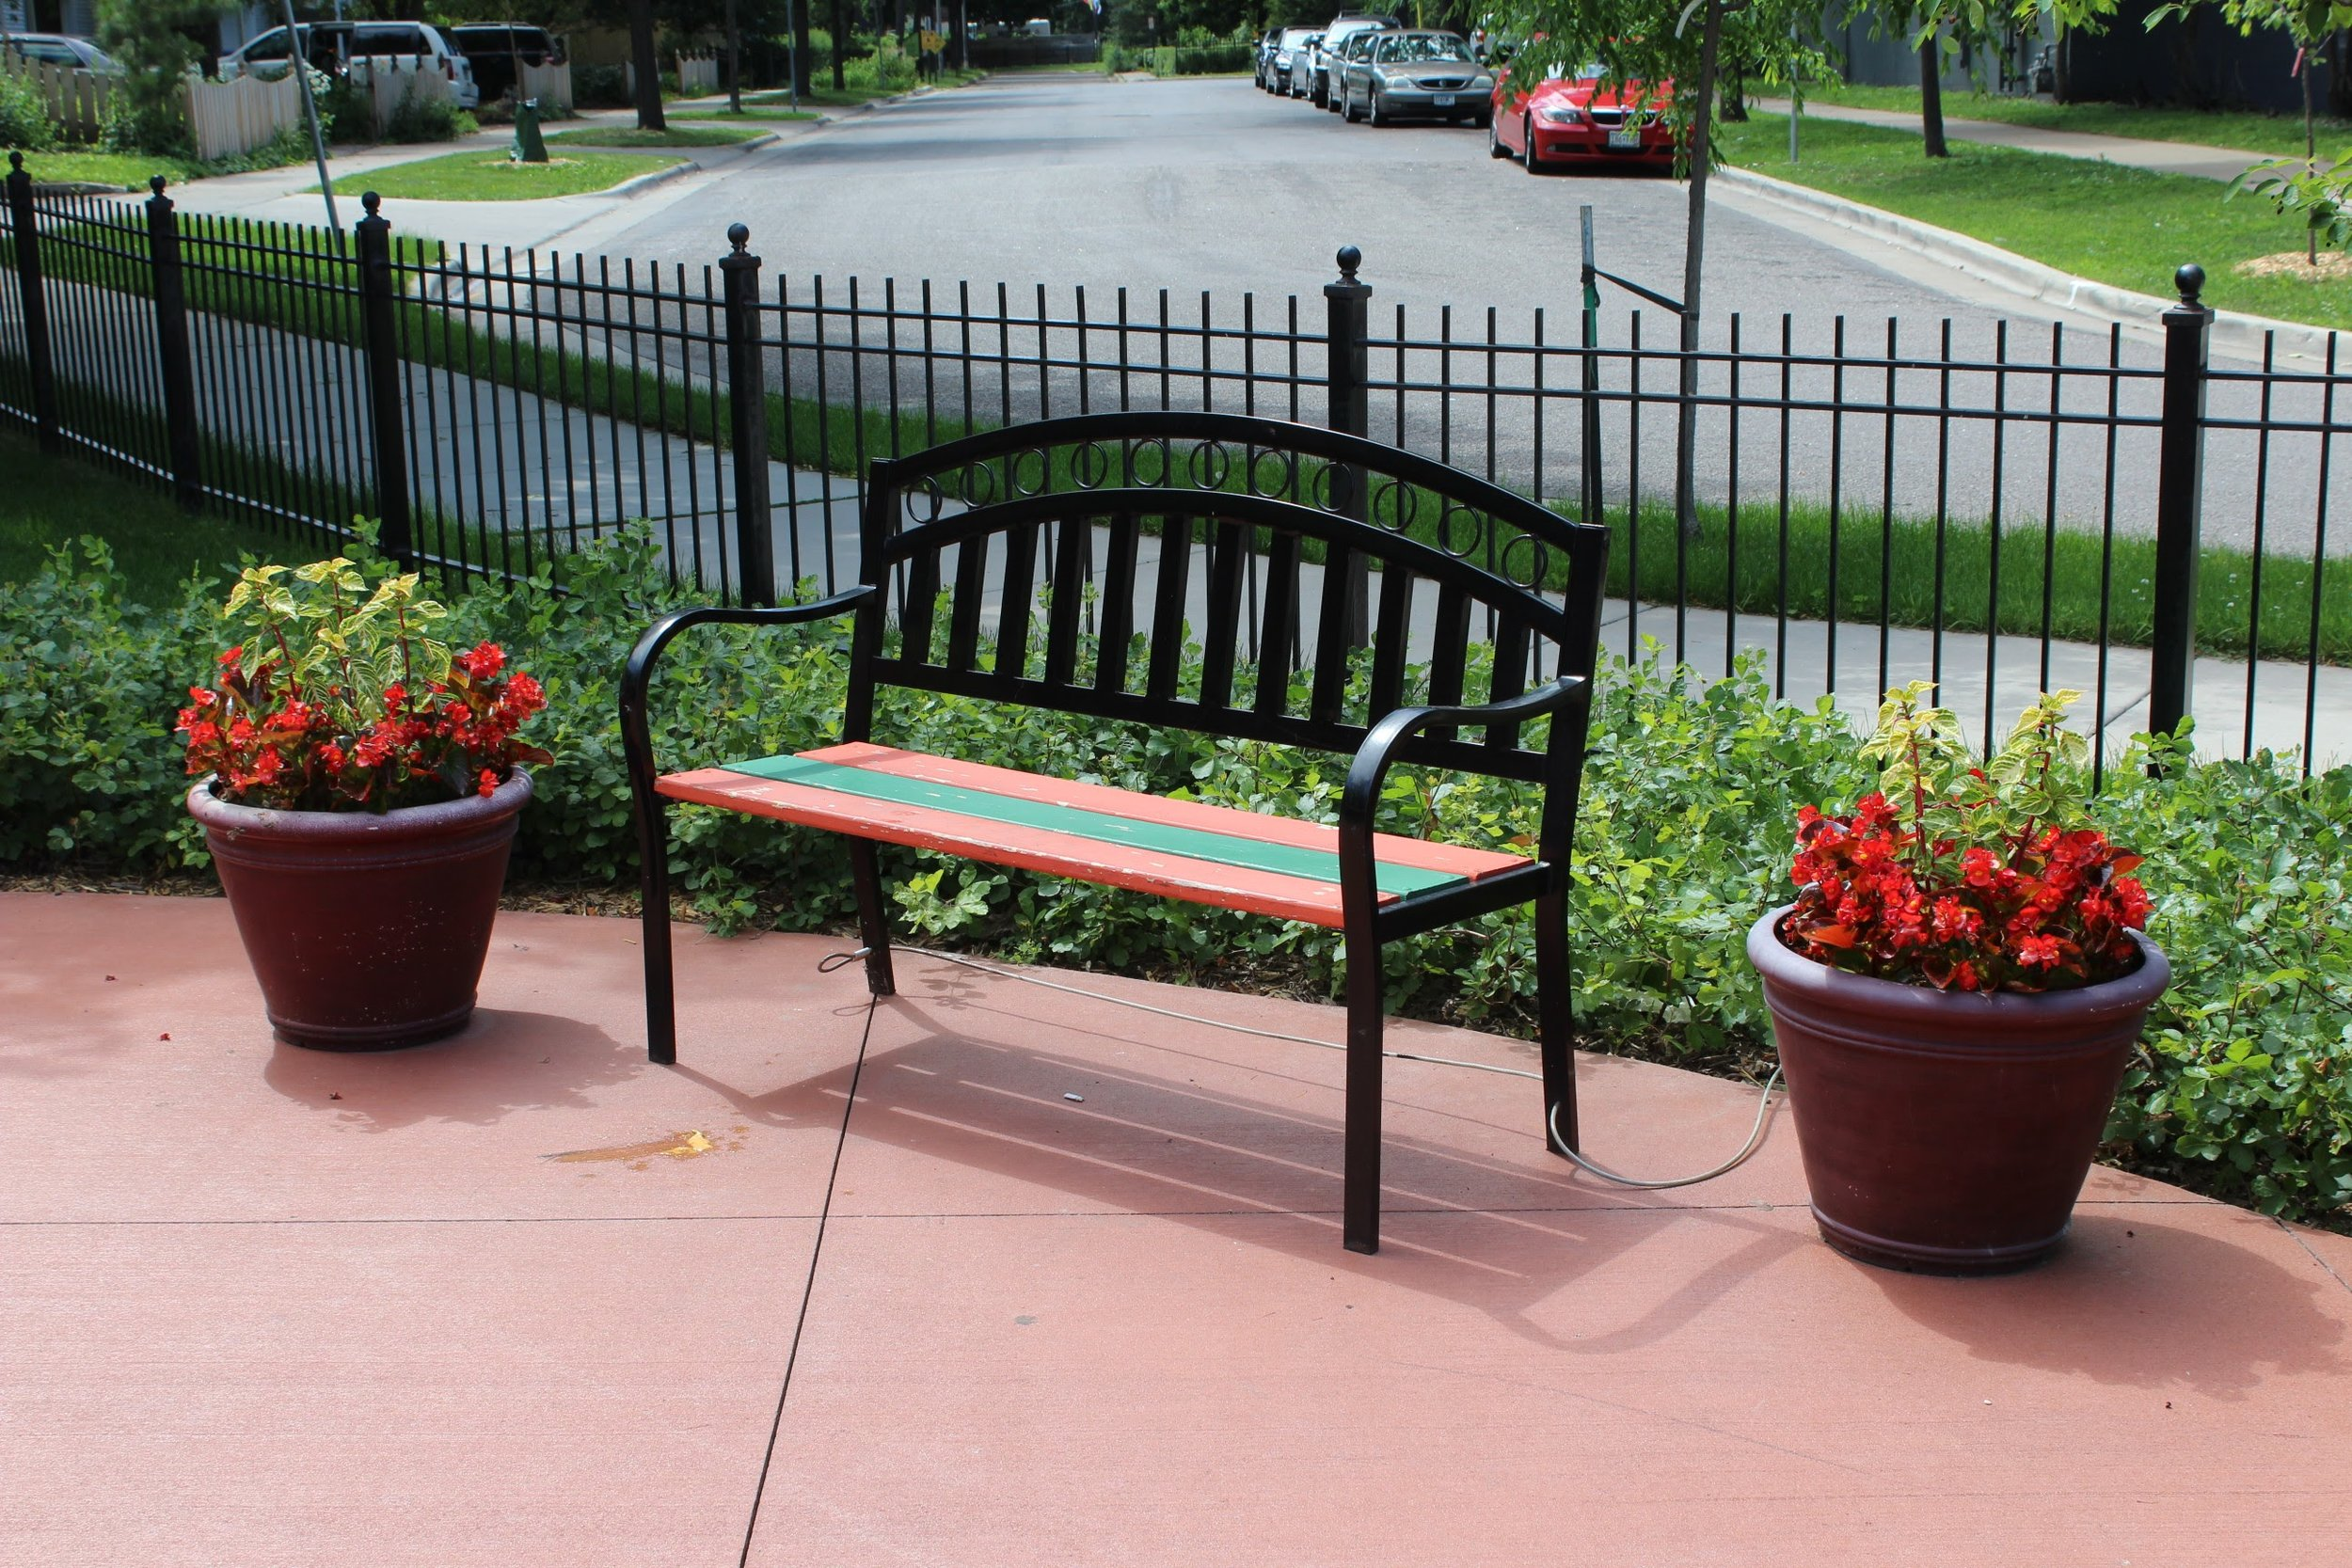 bench at afro deli.jpg